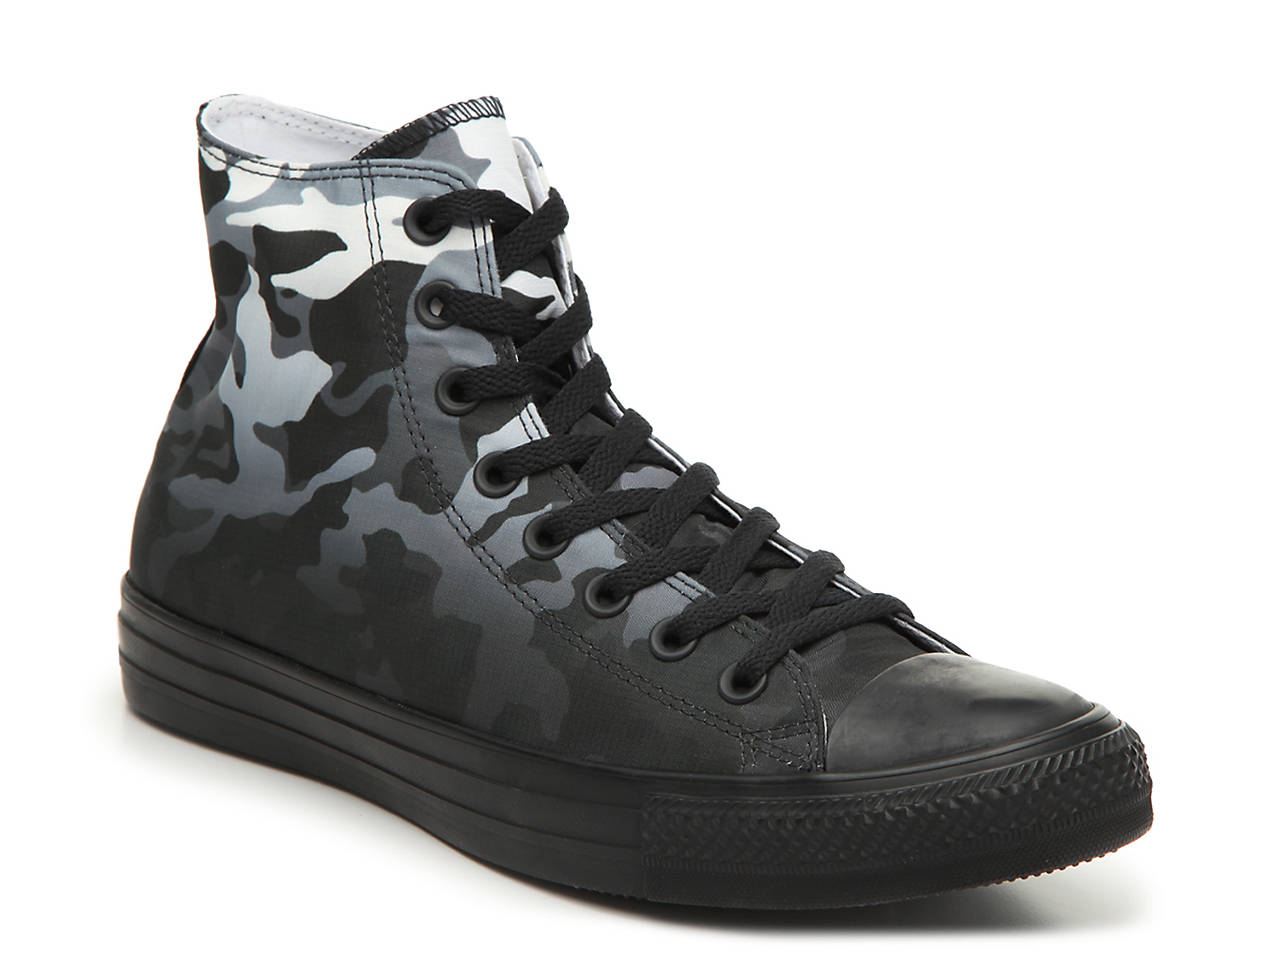 c3fafd7967978d Converse Chuck Taylor All Star Hi Camo High-Top Sneaker - Men s ...